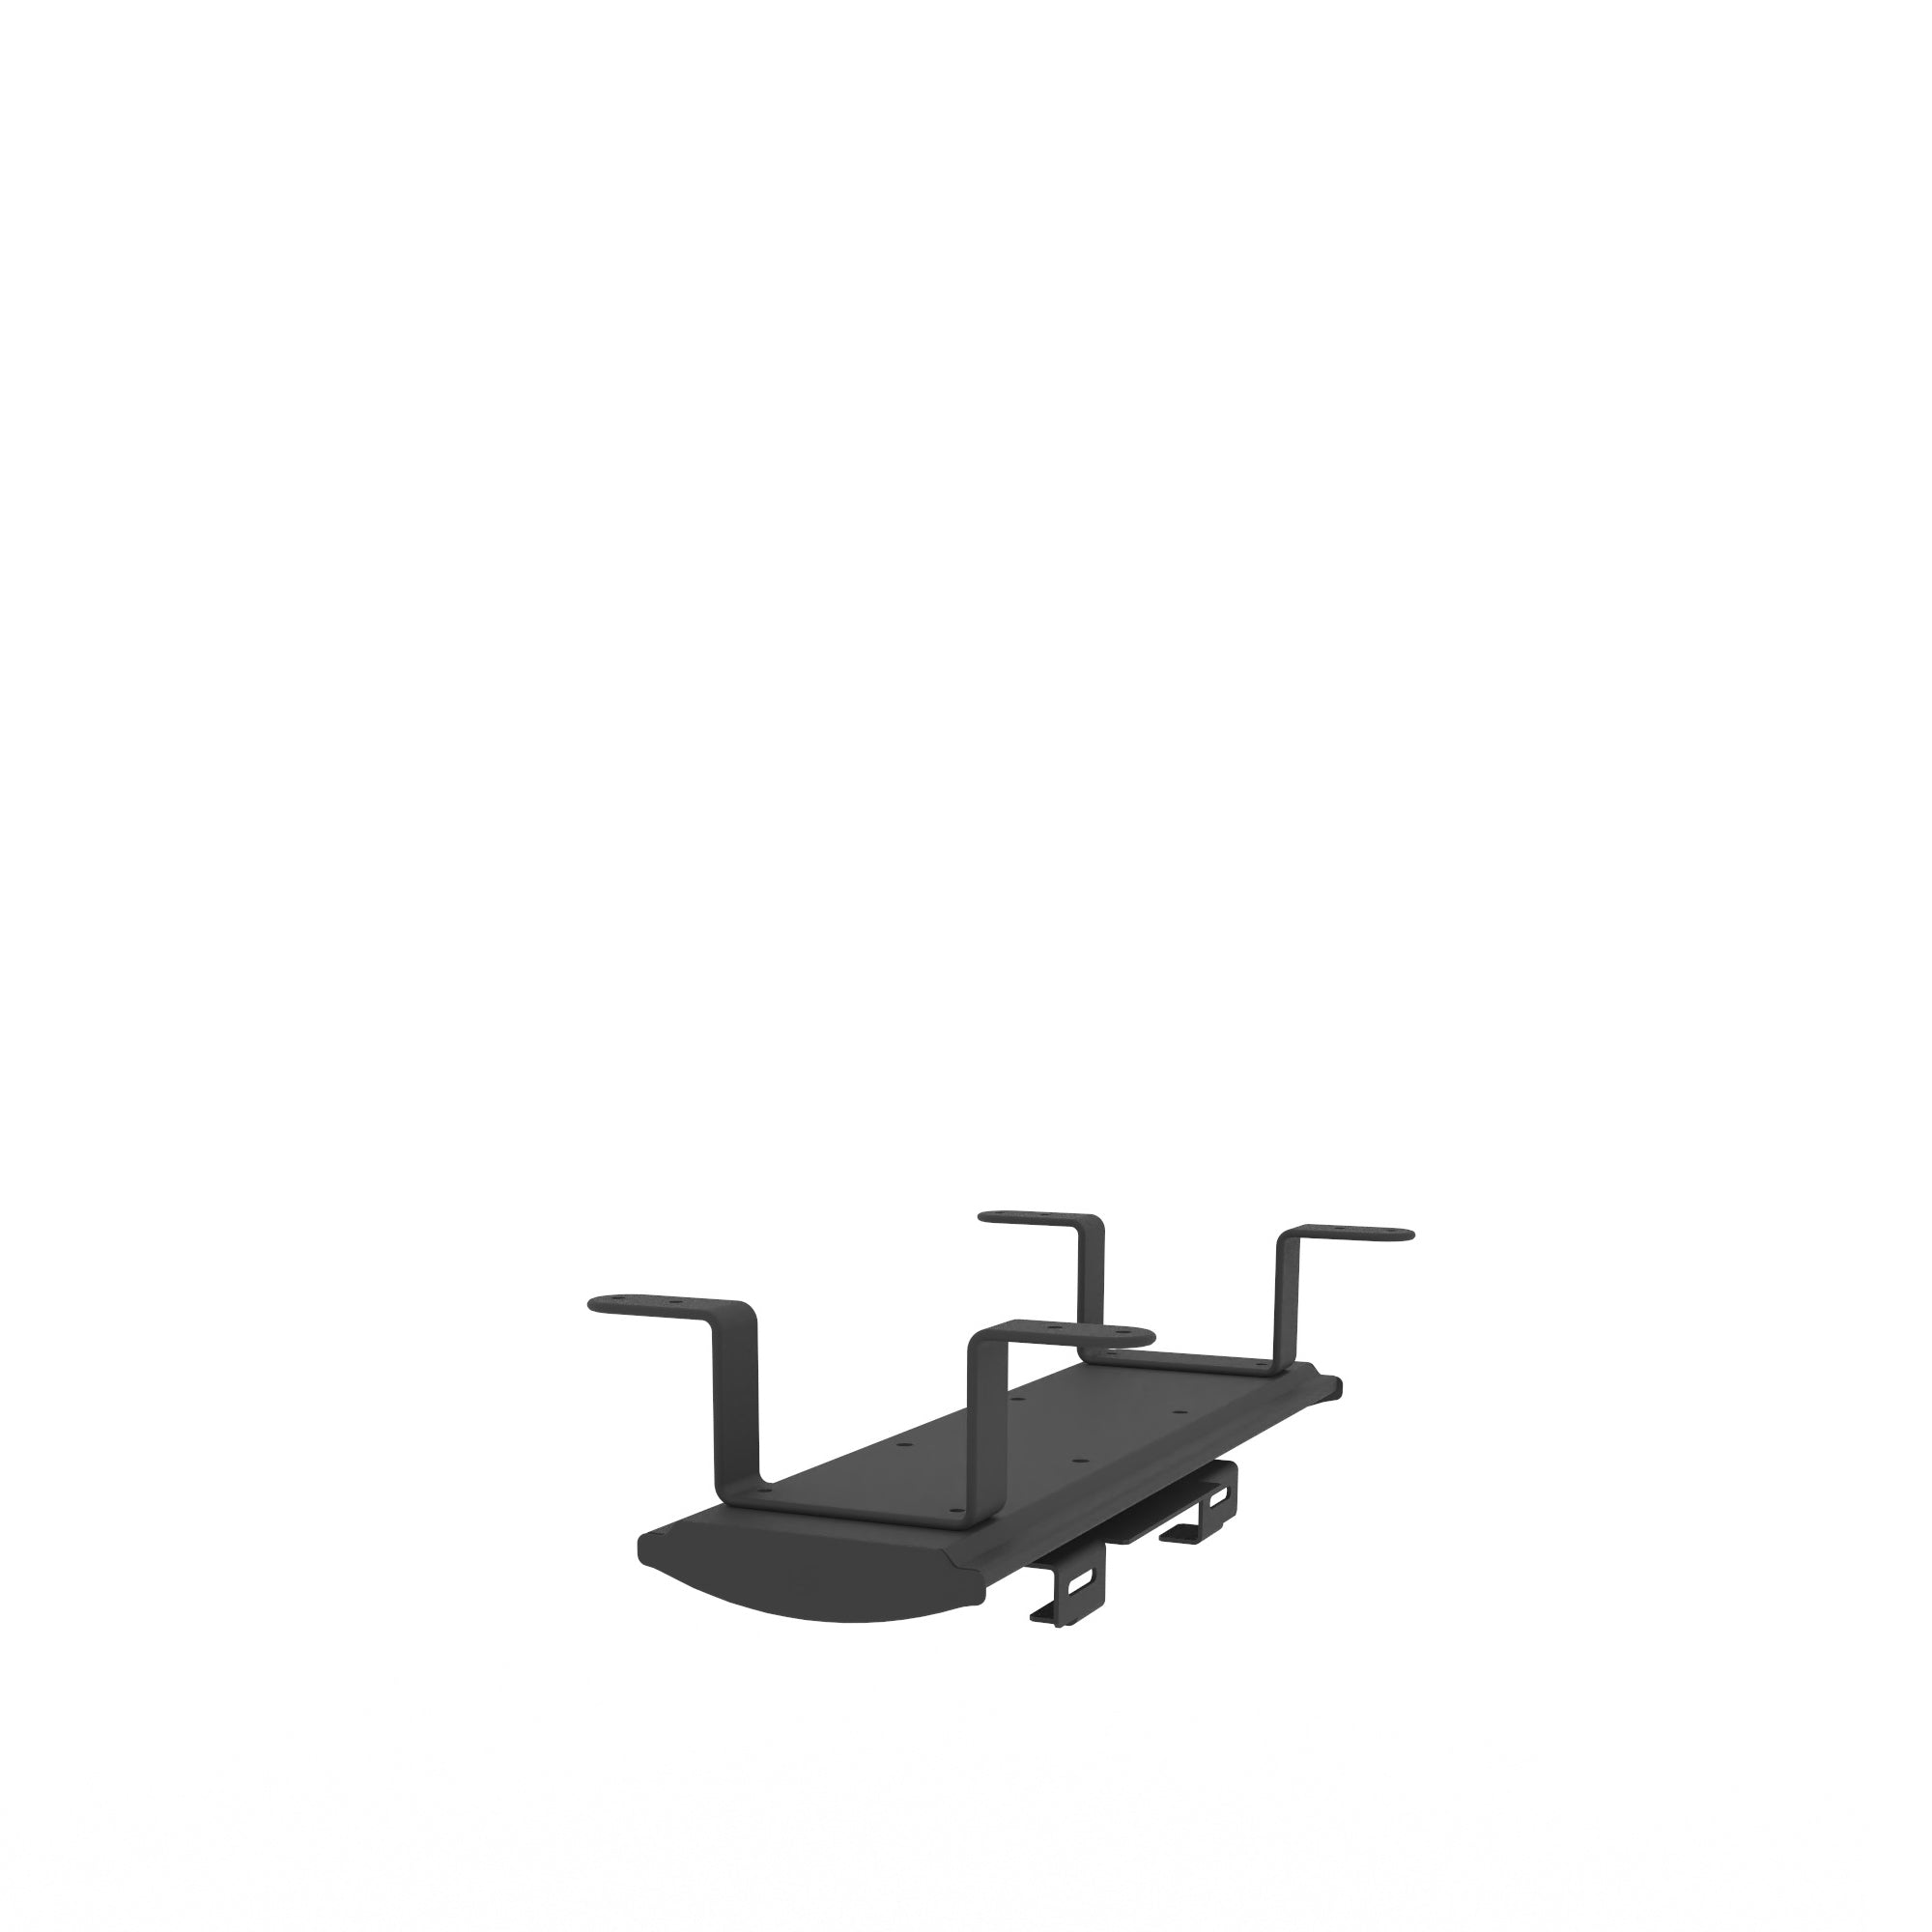 Edsbyn Office Black Rotating Under Desk CPU Holder